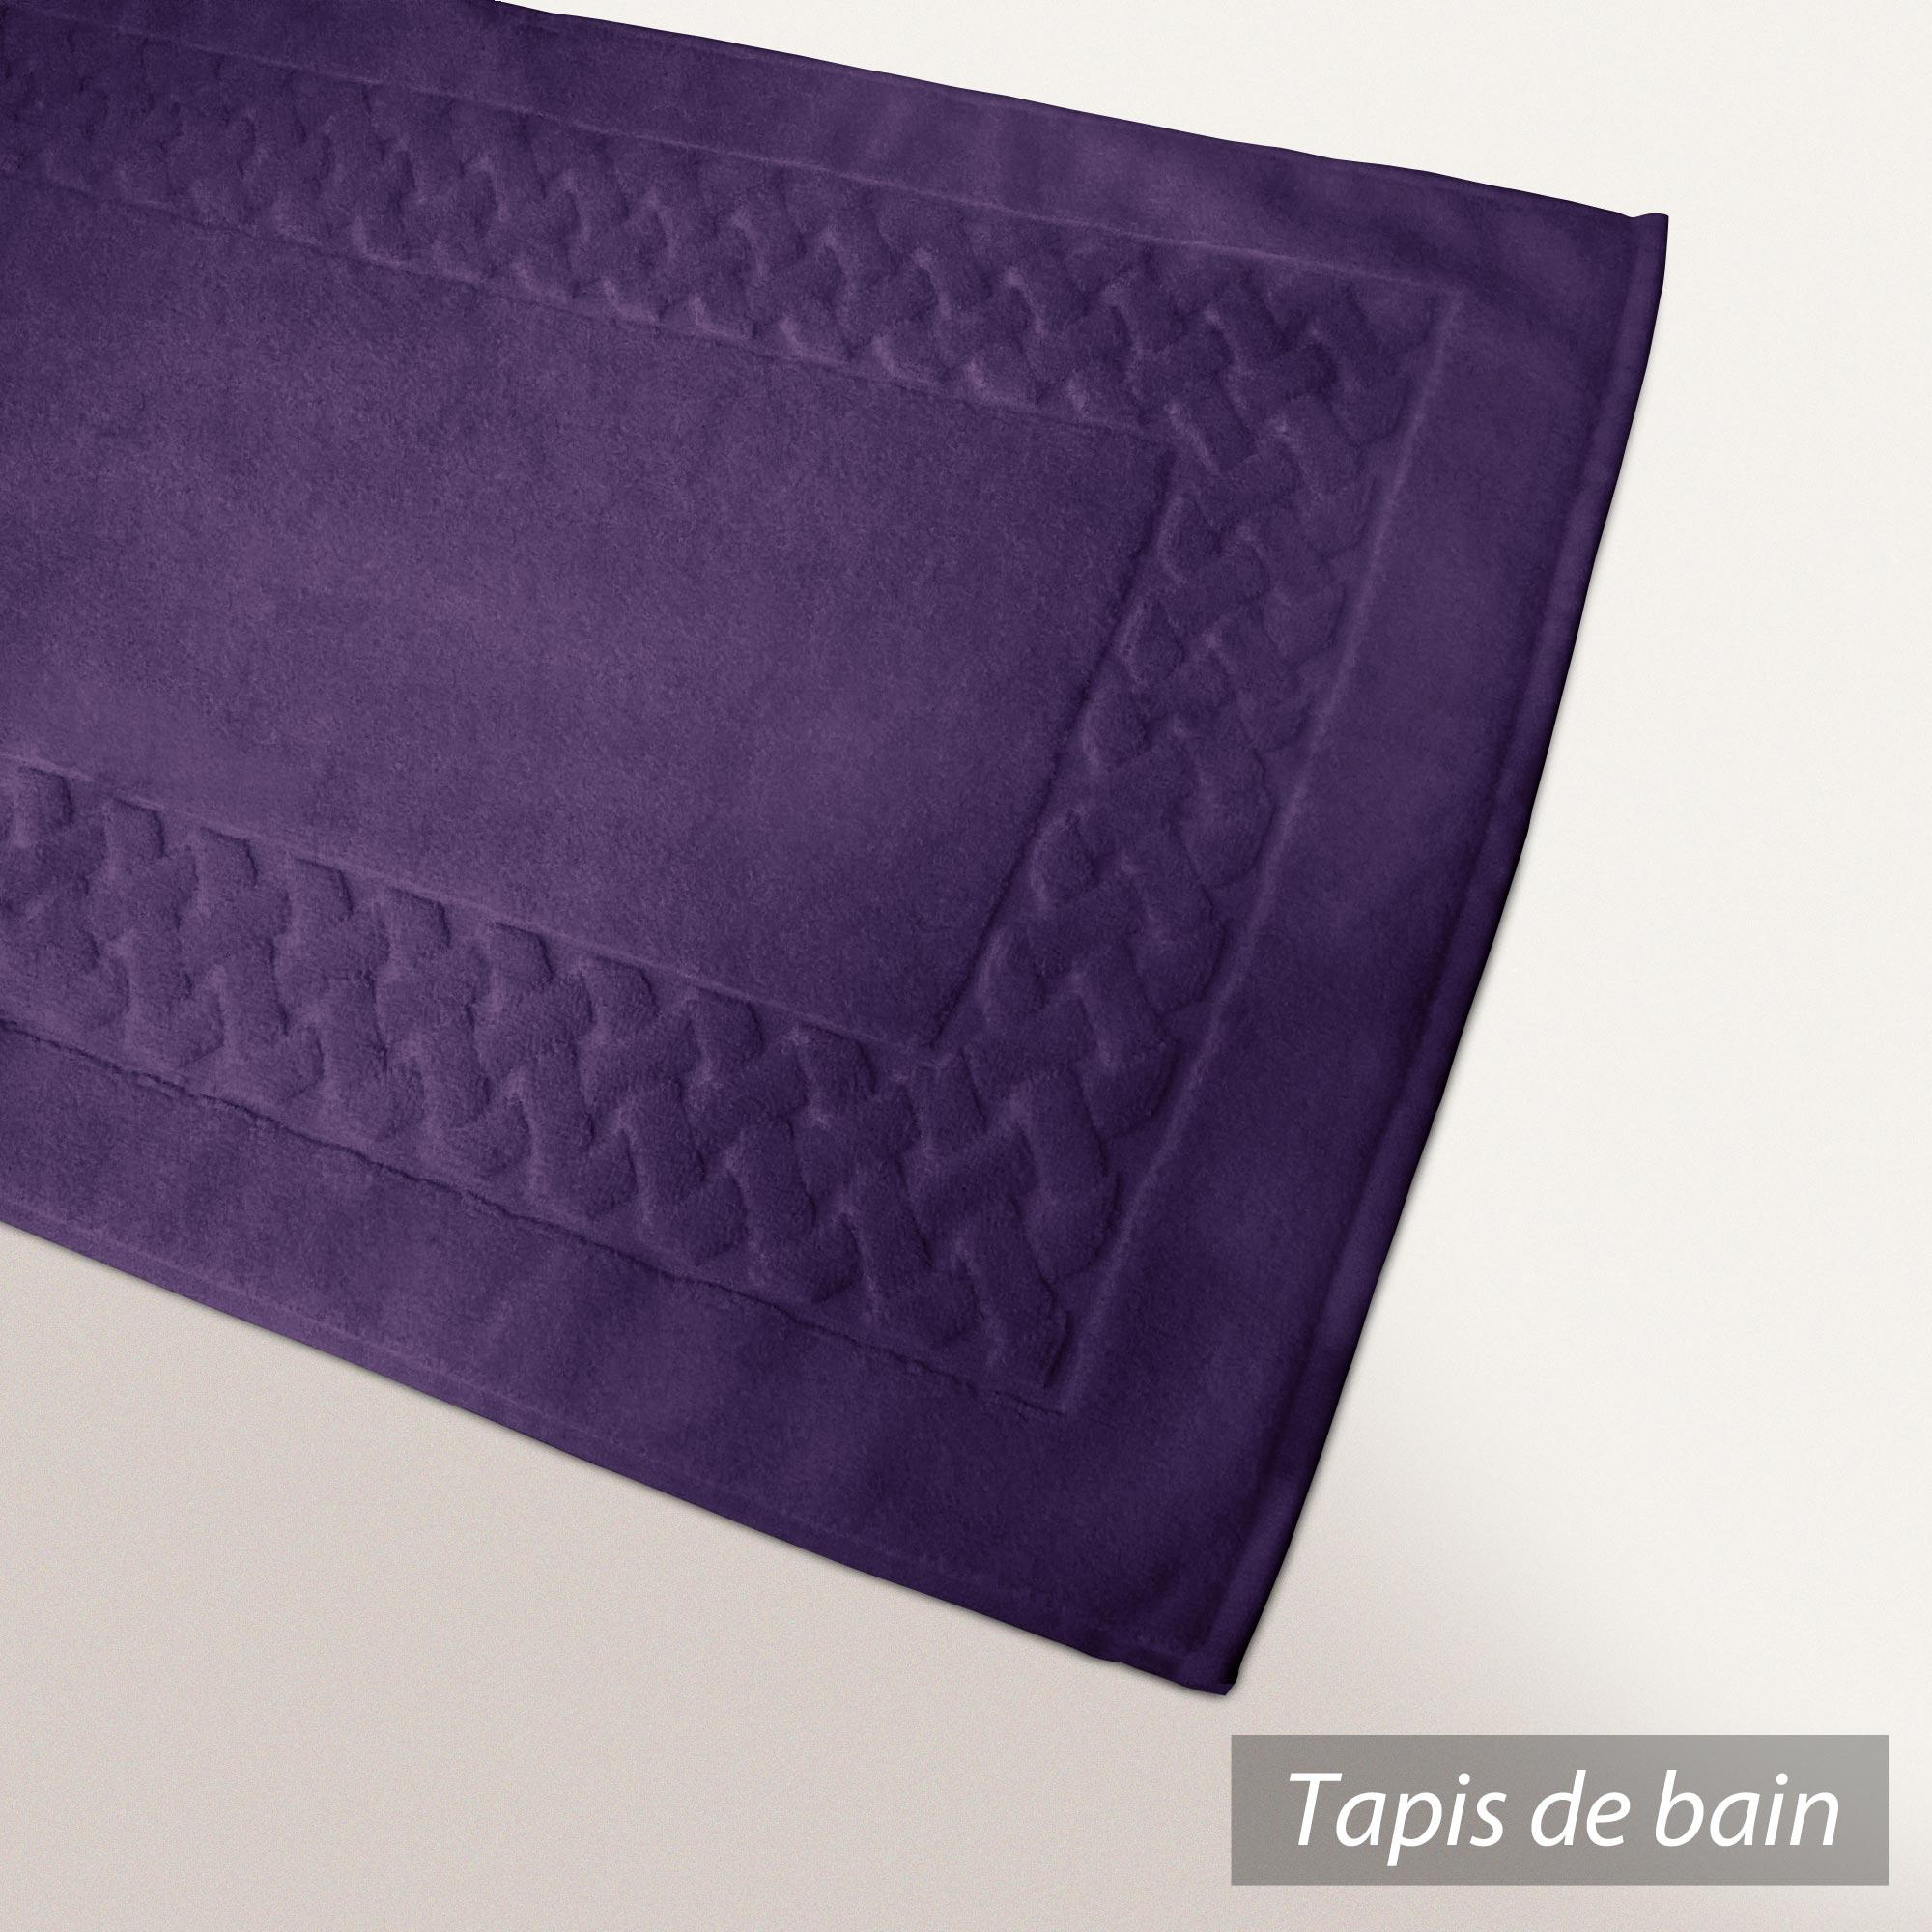 tapis de bain 50x80 coton uni royal cresent violet prune linnea vente de linge de maison. Black Bedroom Furniture Sets. Home Design Ideas